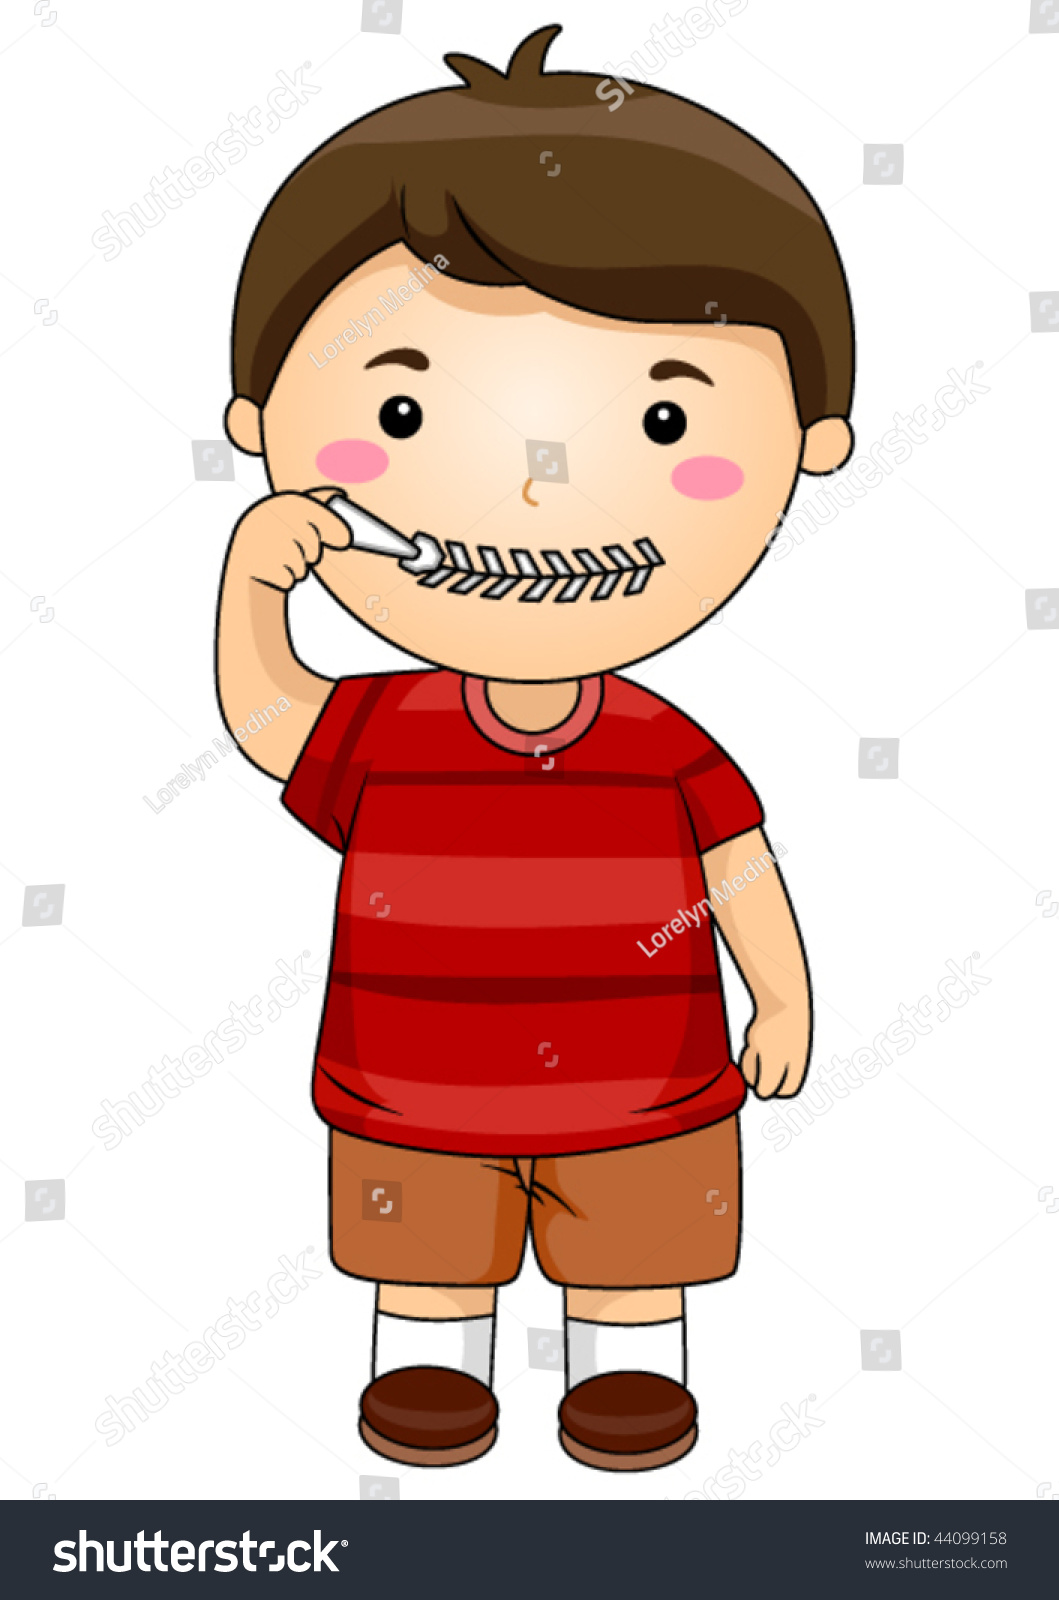 Stock Vector Kid Zipping Mouth Vector on Zipped Mouth Cartoon